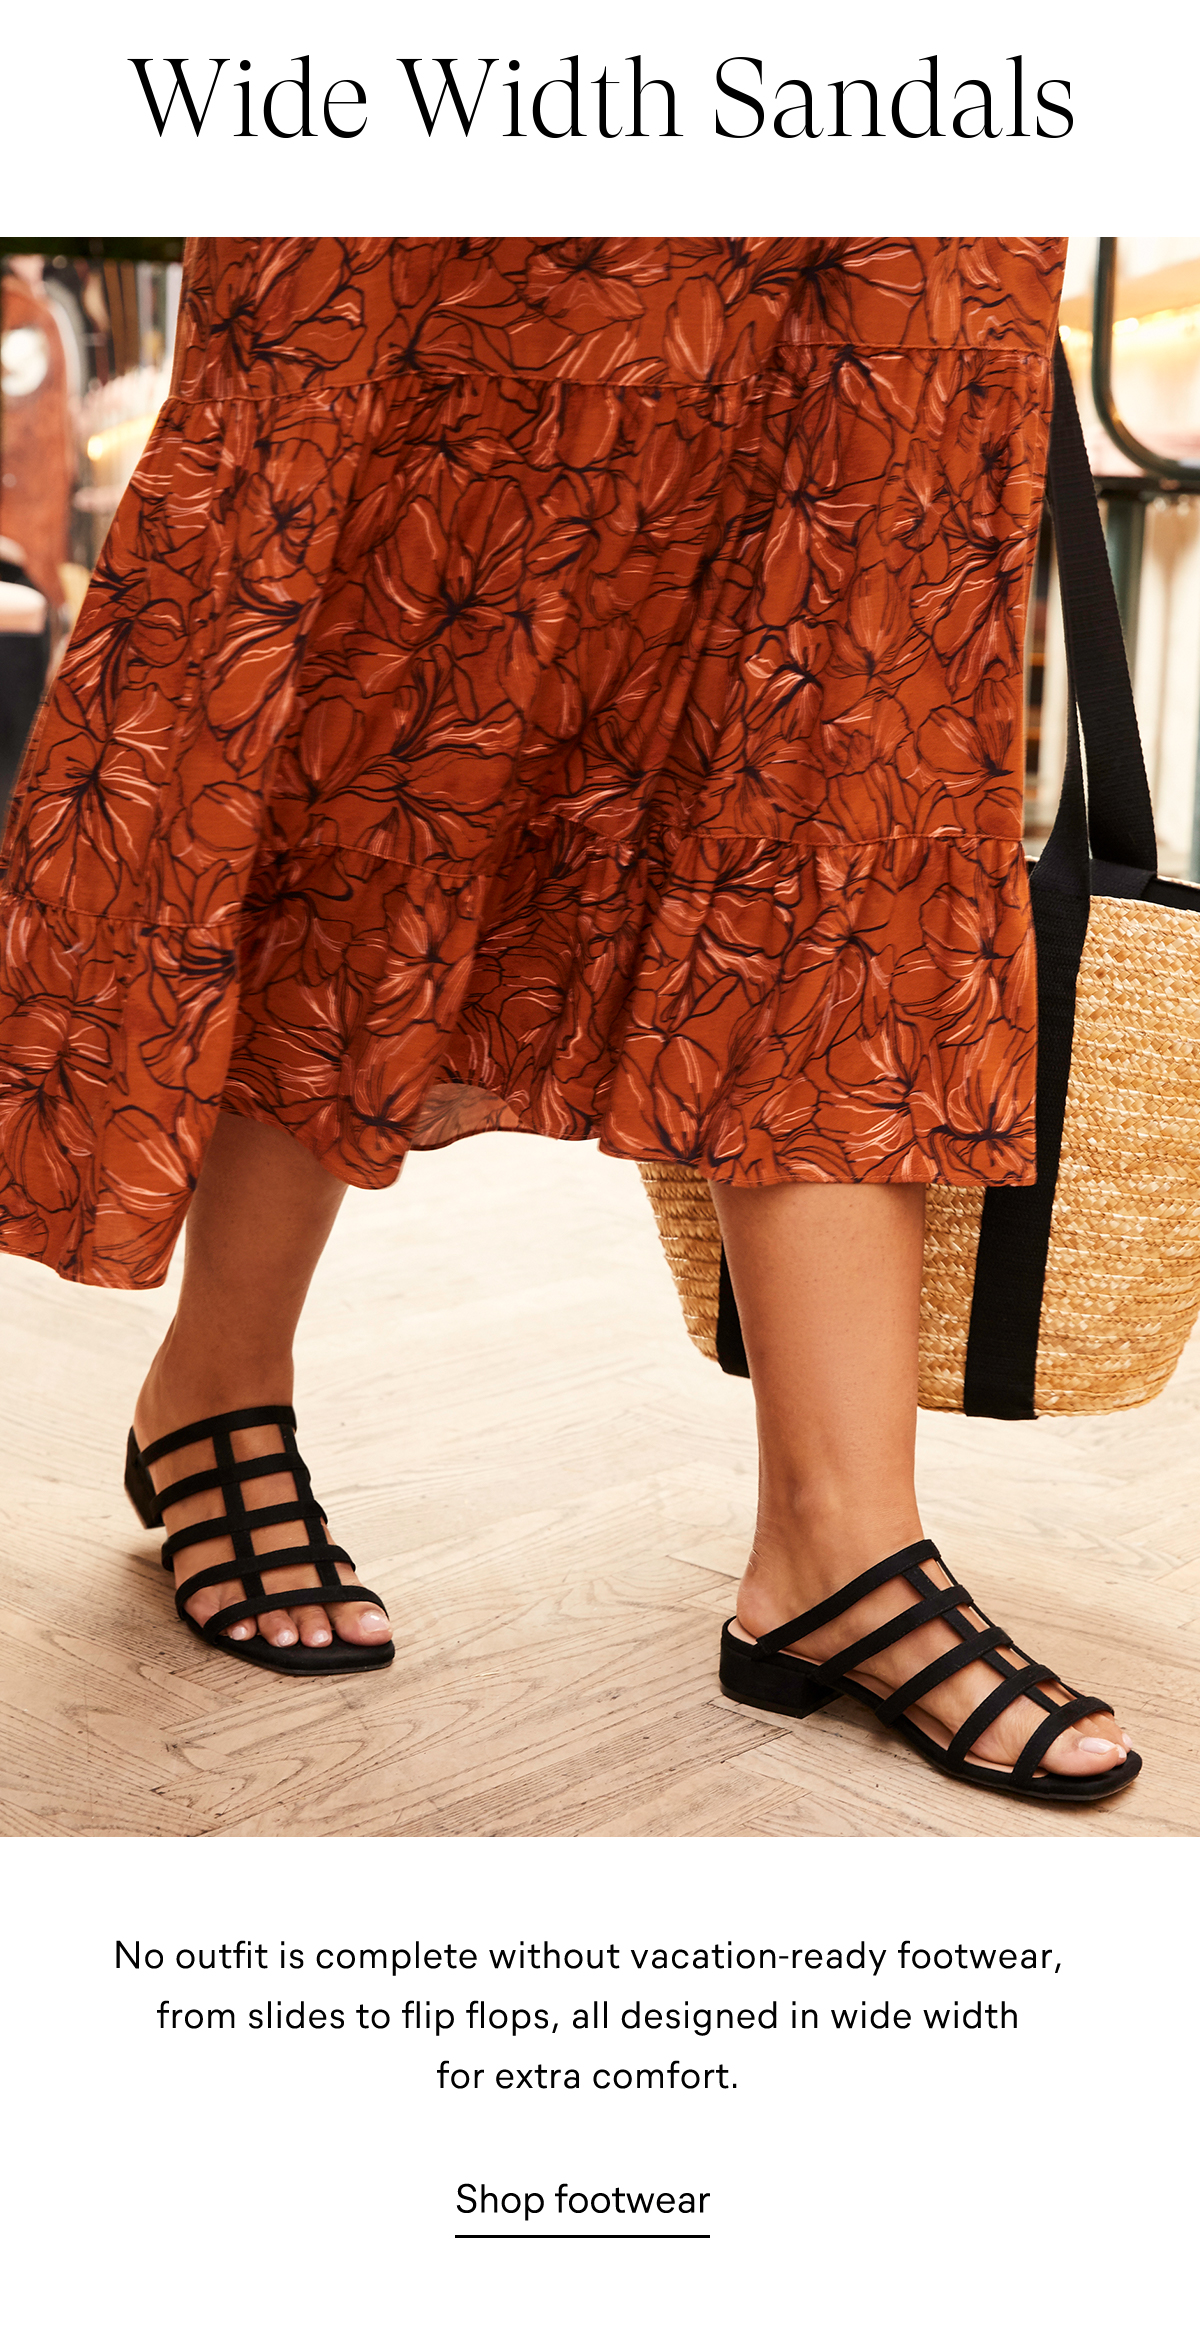 Wide Width Sandals No outfit is complete without vacation-ready footwear, from slides to flip flops, all designed in wide width for extra comfort. Caged Open Toe Sandal $59 Shop footwear >